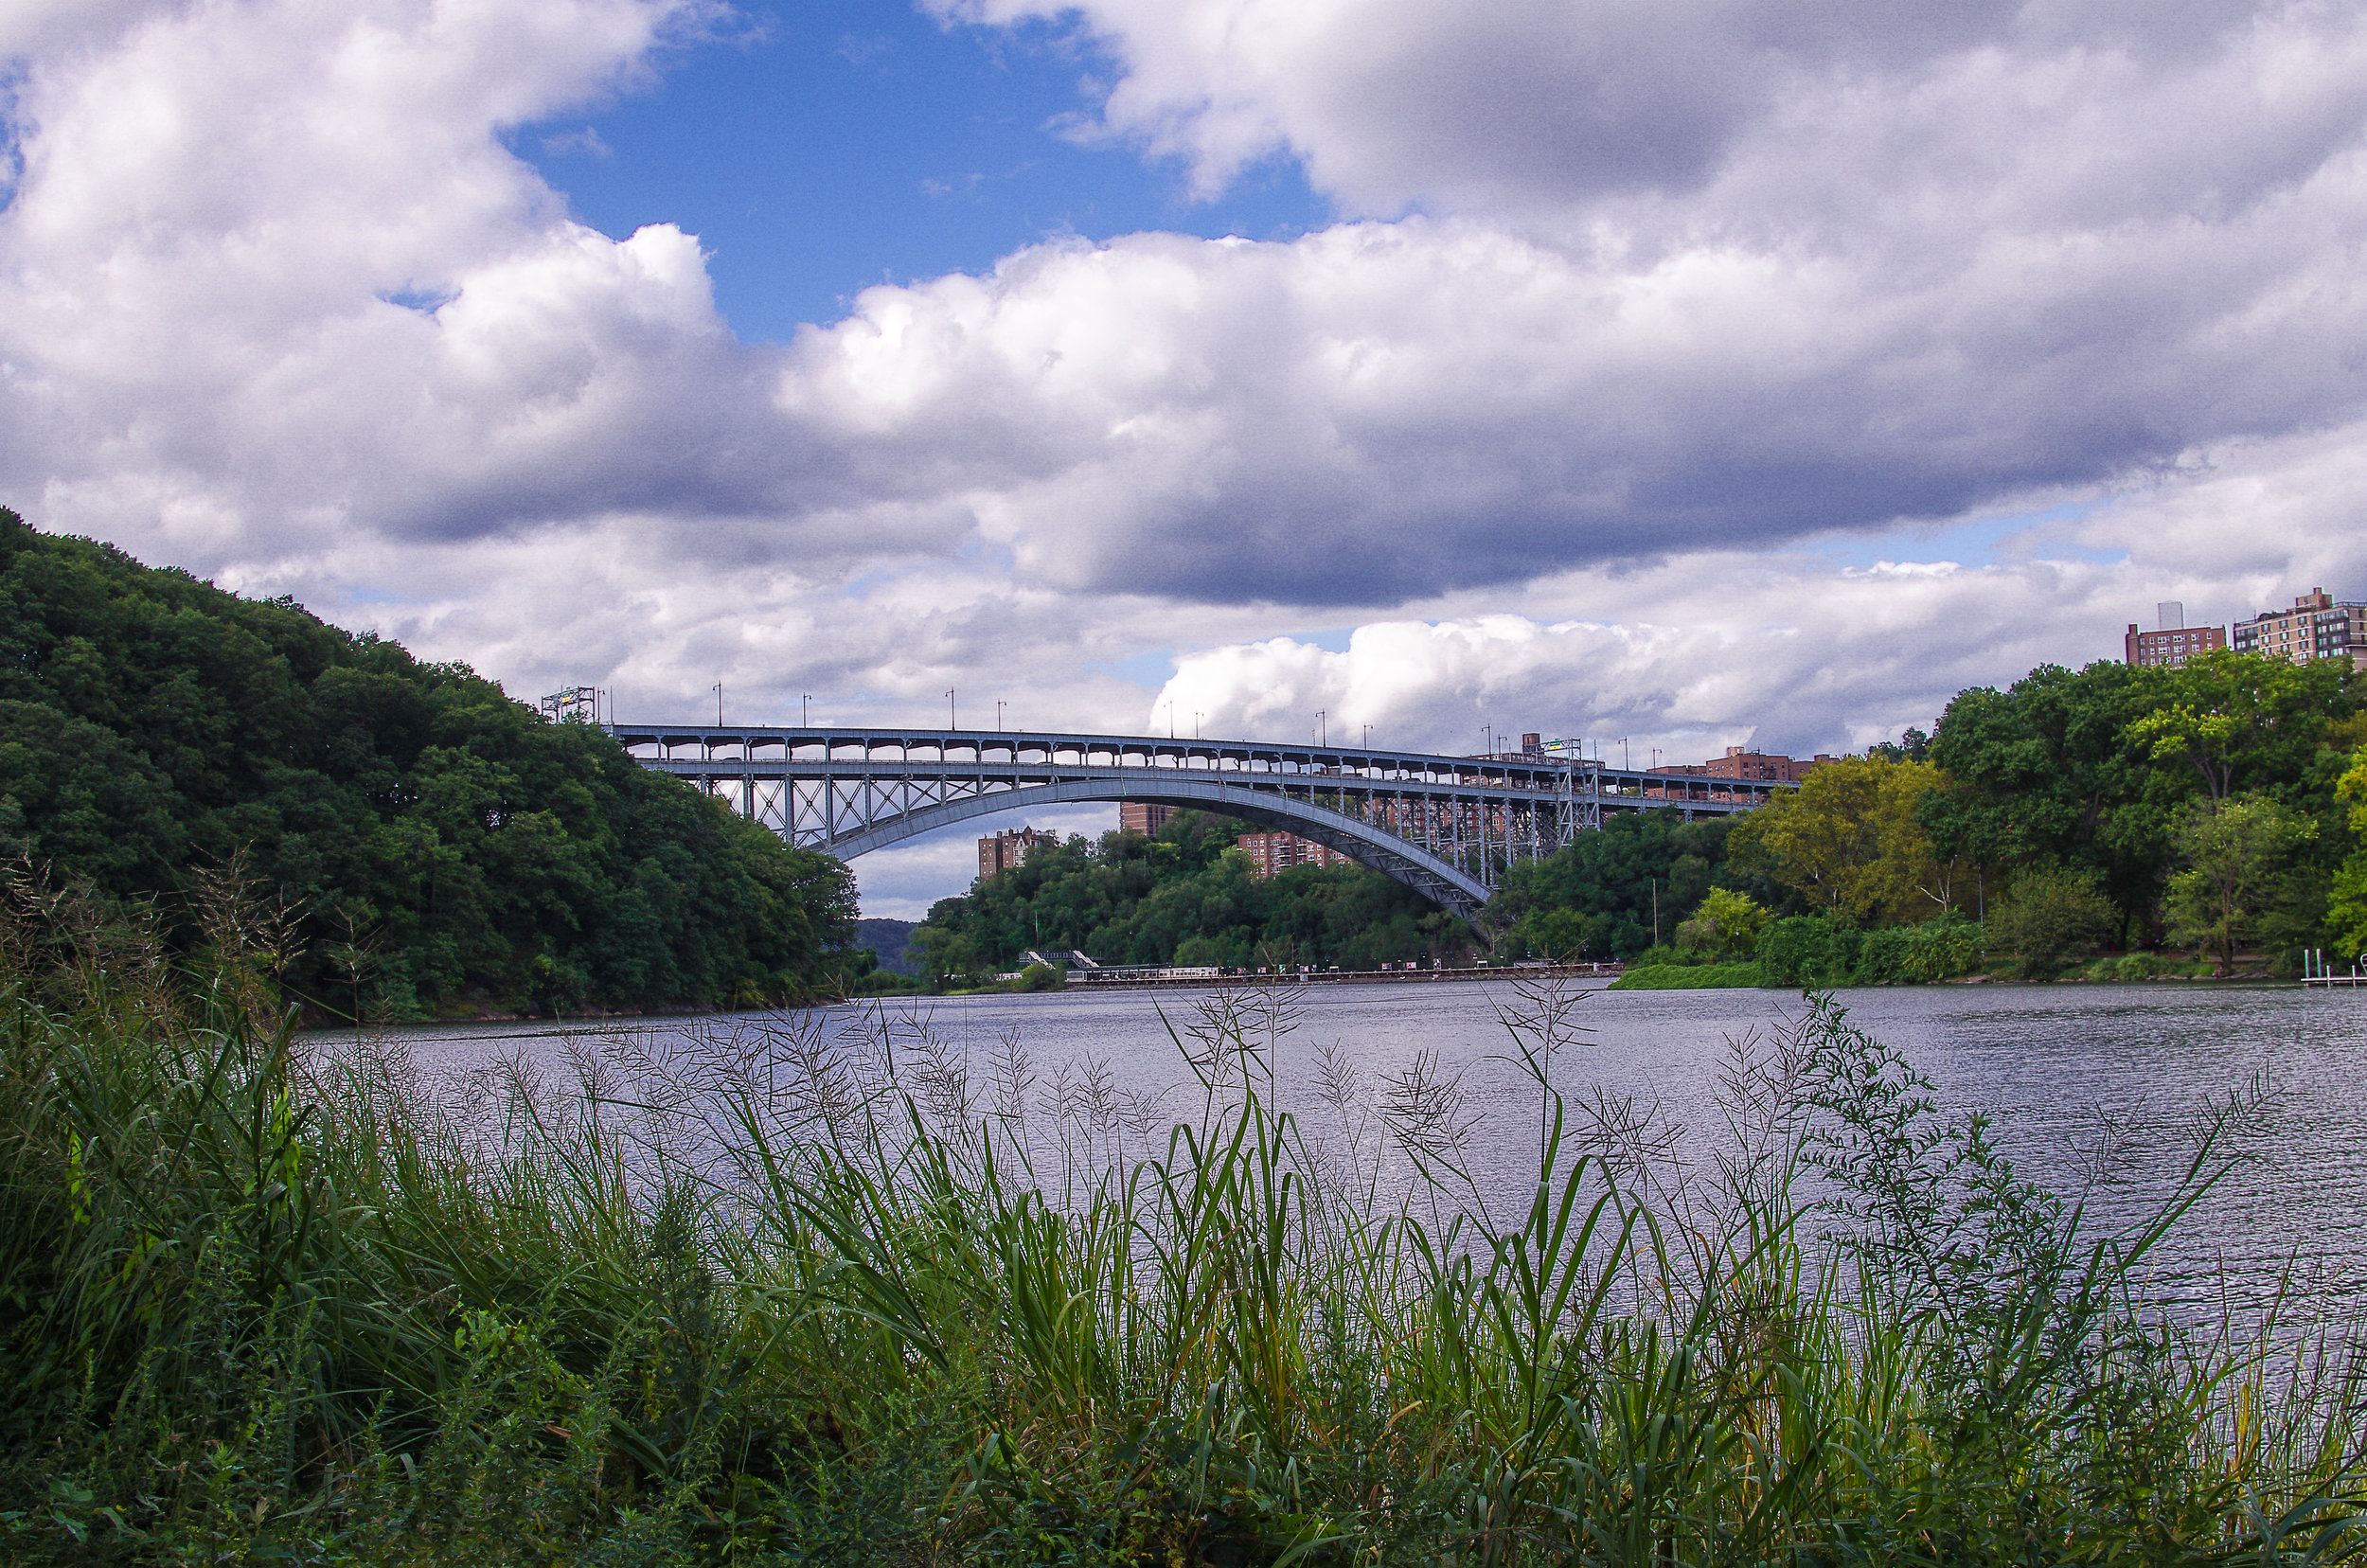 The Henry Hudson Bridge from the banks of Inwood Park and Spuyten Duyvel Creek